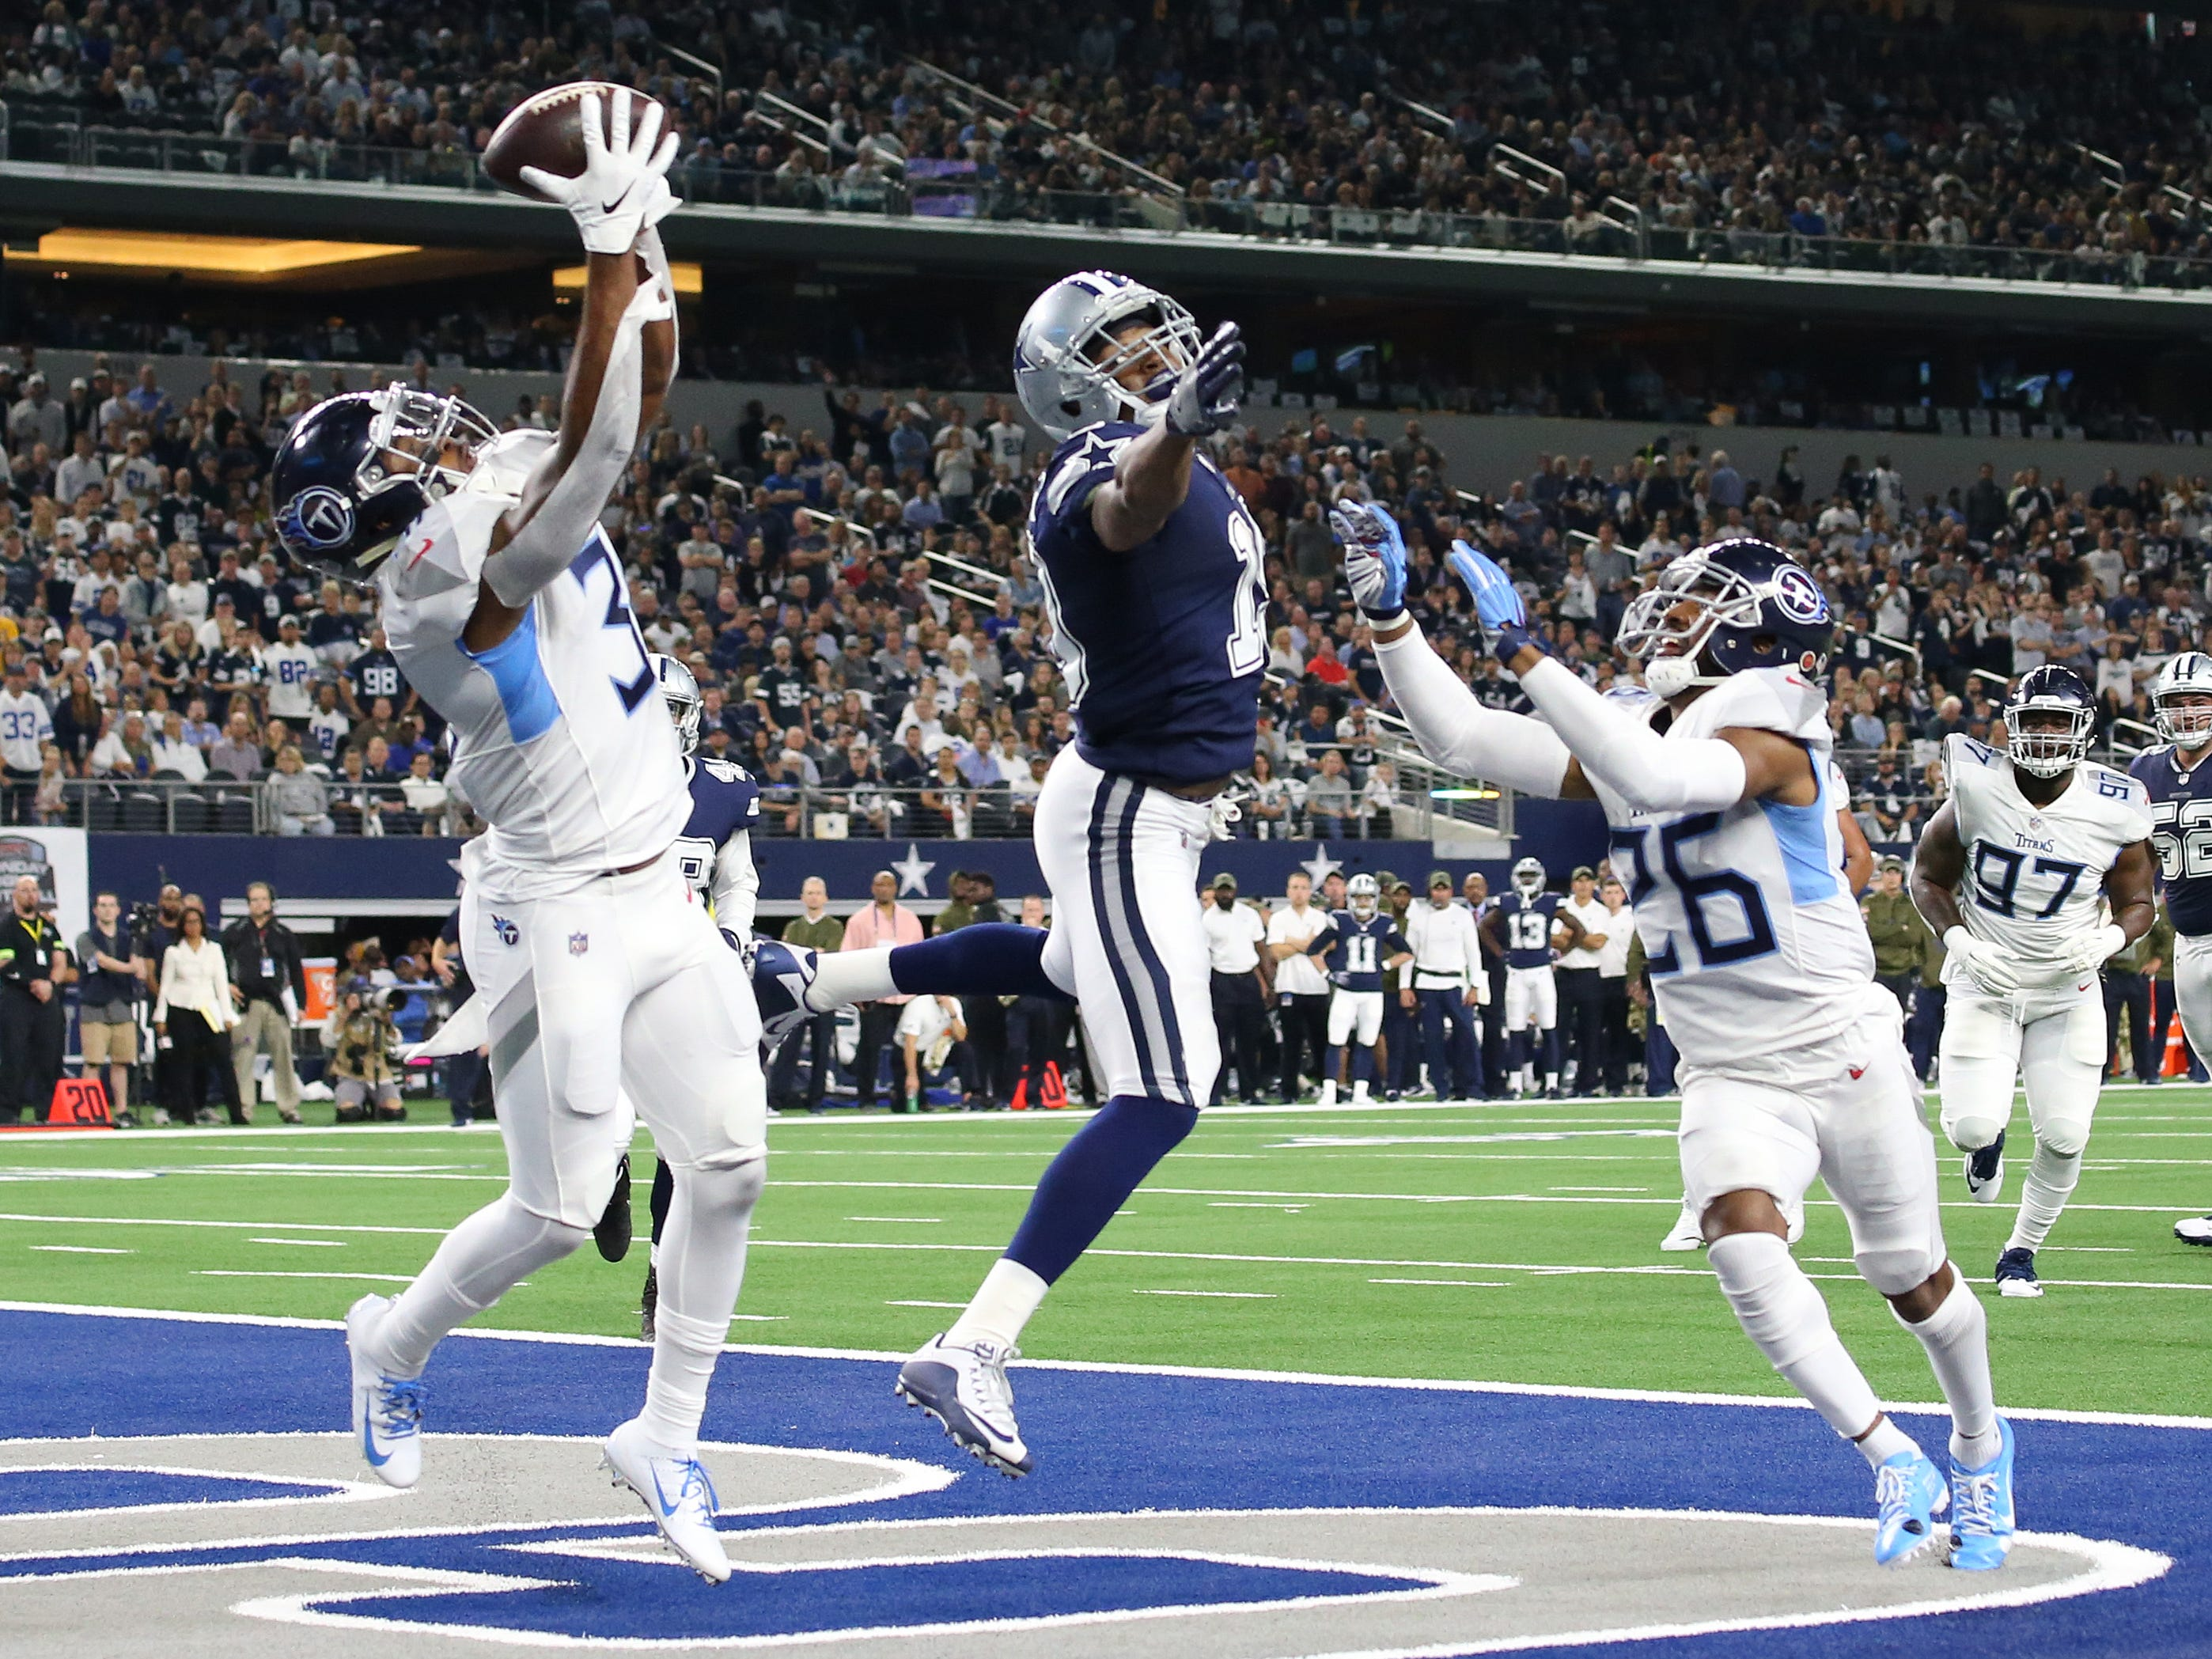 Tennessee Titans safety Kevin Byard (31) intercepts the ball in the end zone intended for Dallas Cowboys receiver Amari Cooper (19) in the first quarter at AT&T Stadium.